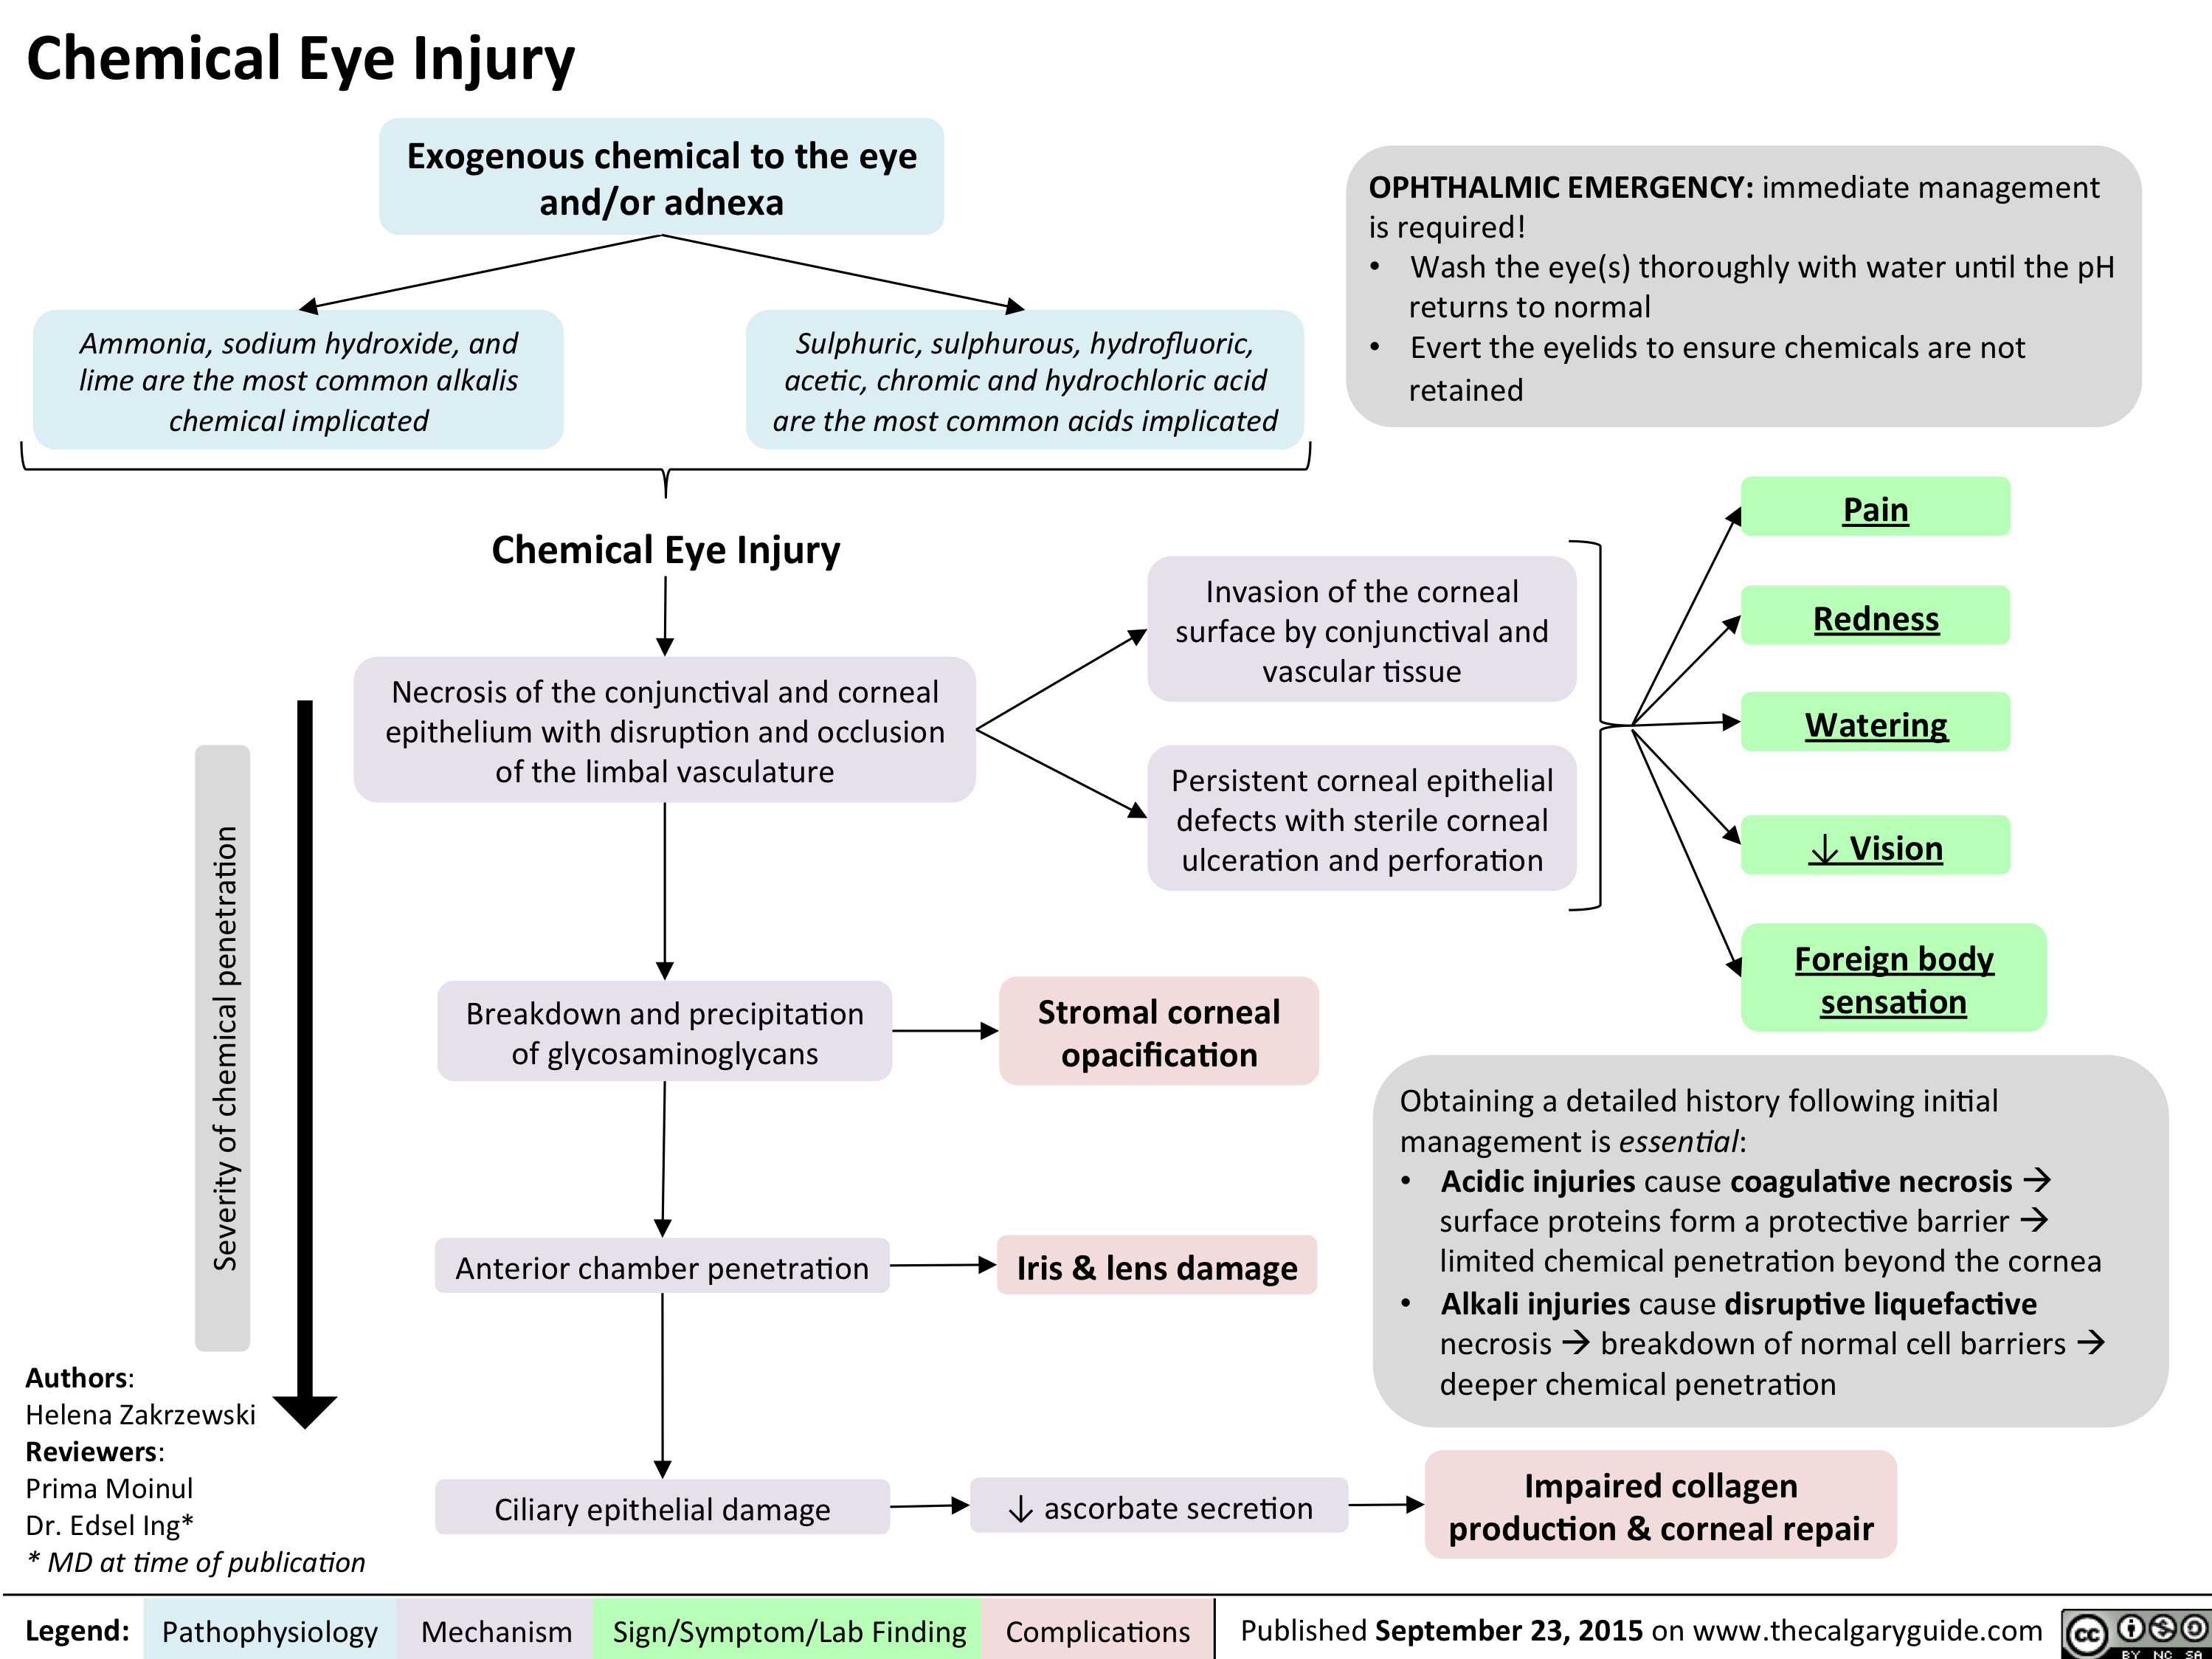 Chemical Eye Injury Pathogenesis and clinical findings